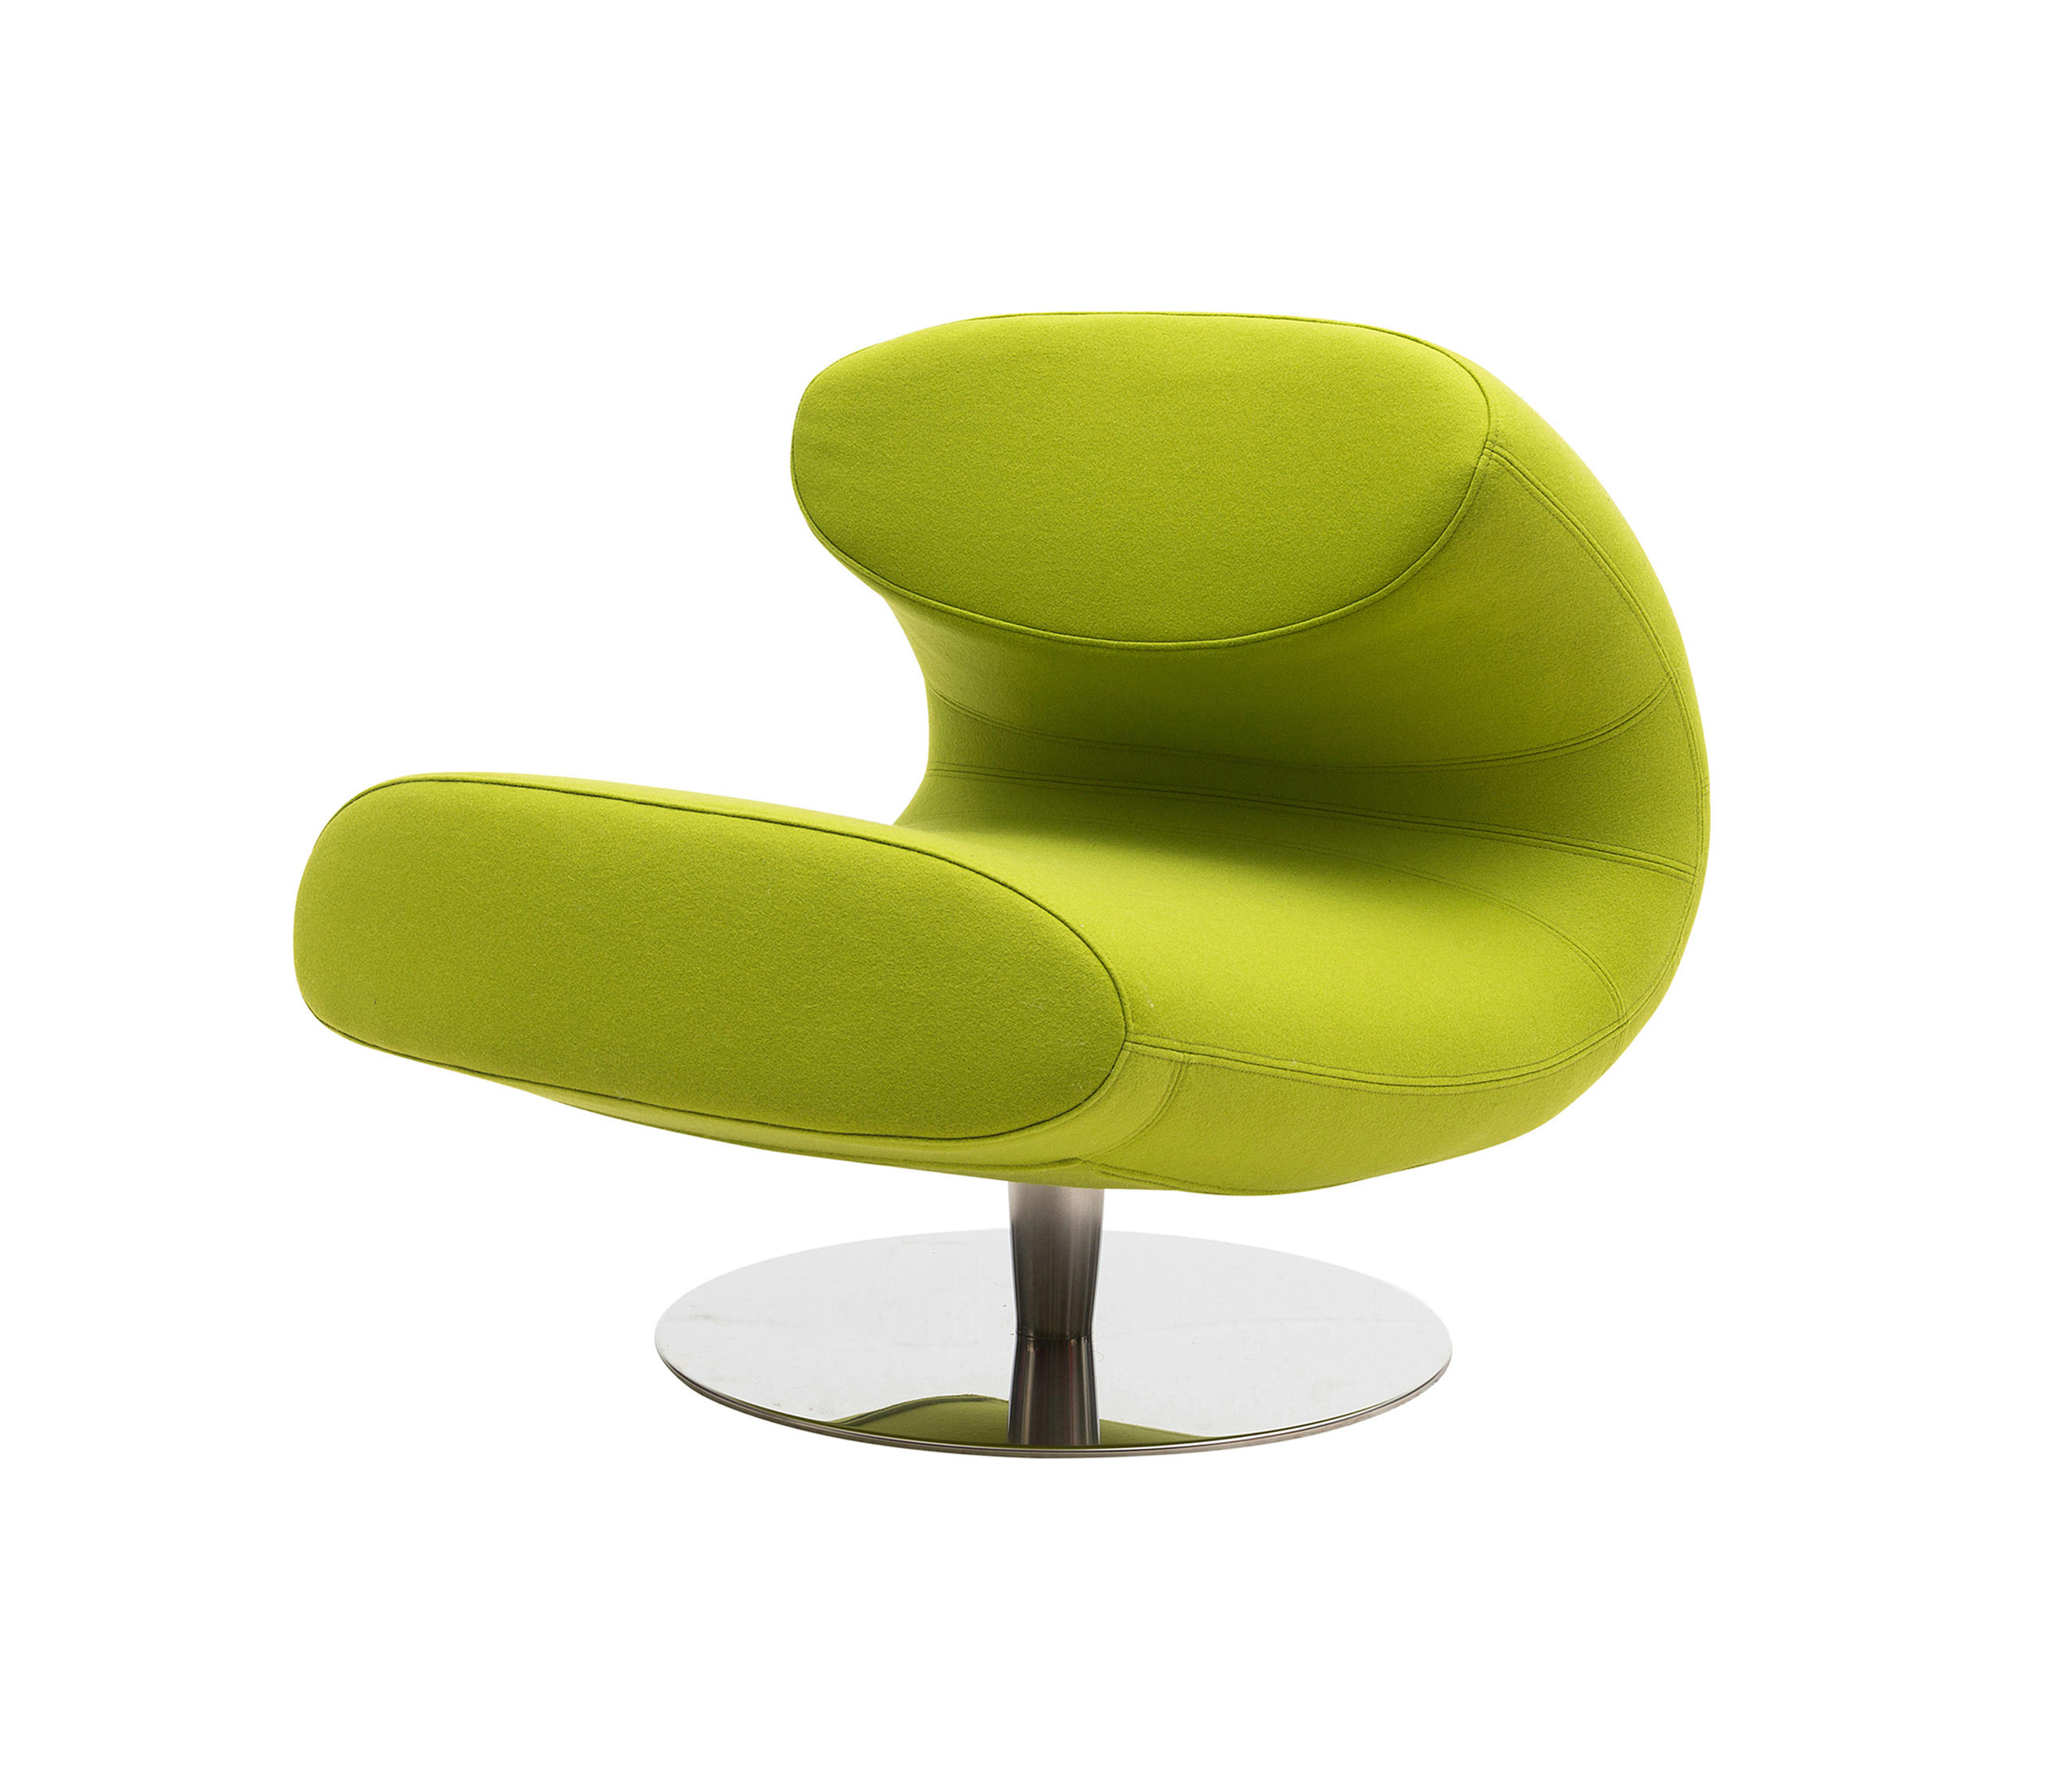 RIO Lounge chairs from Softline A S